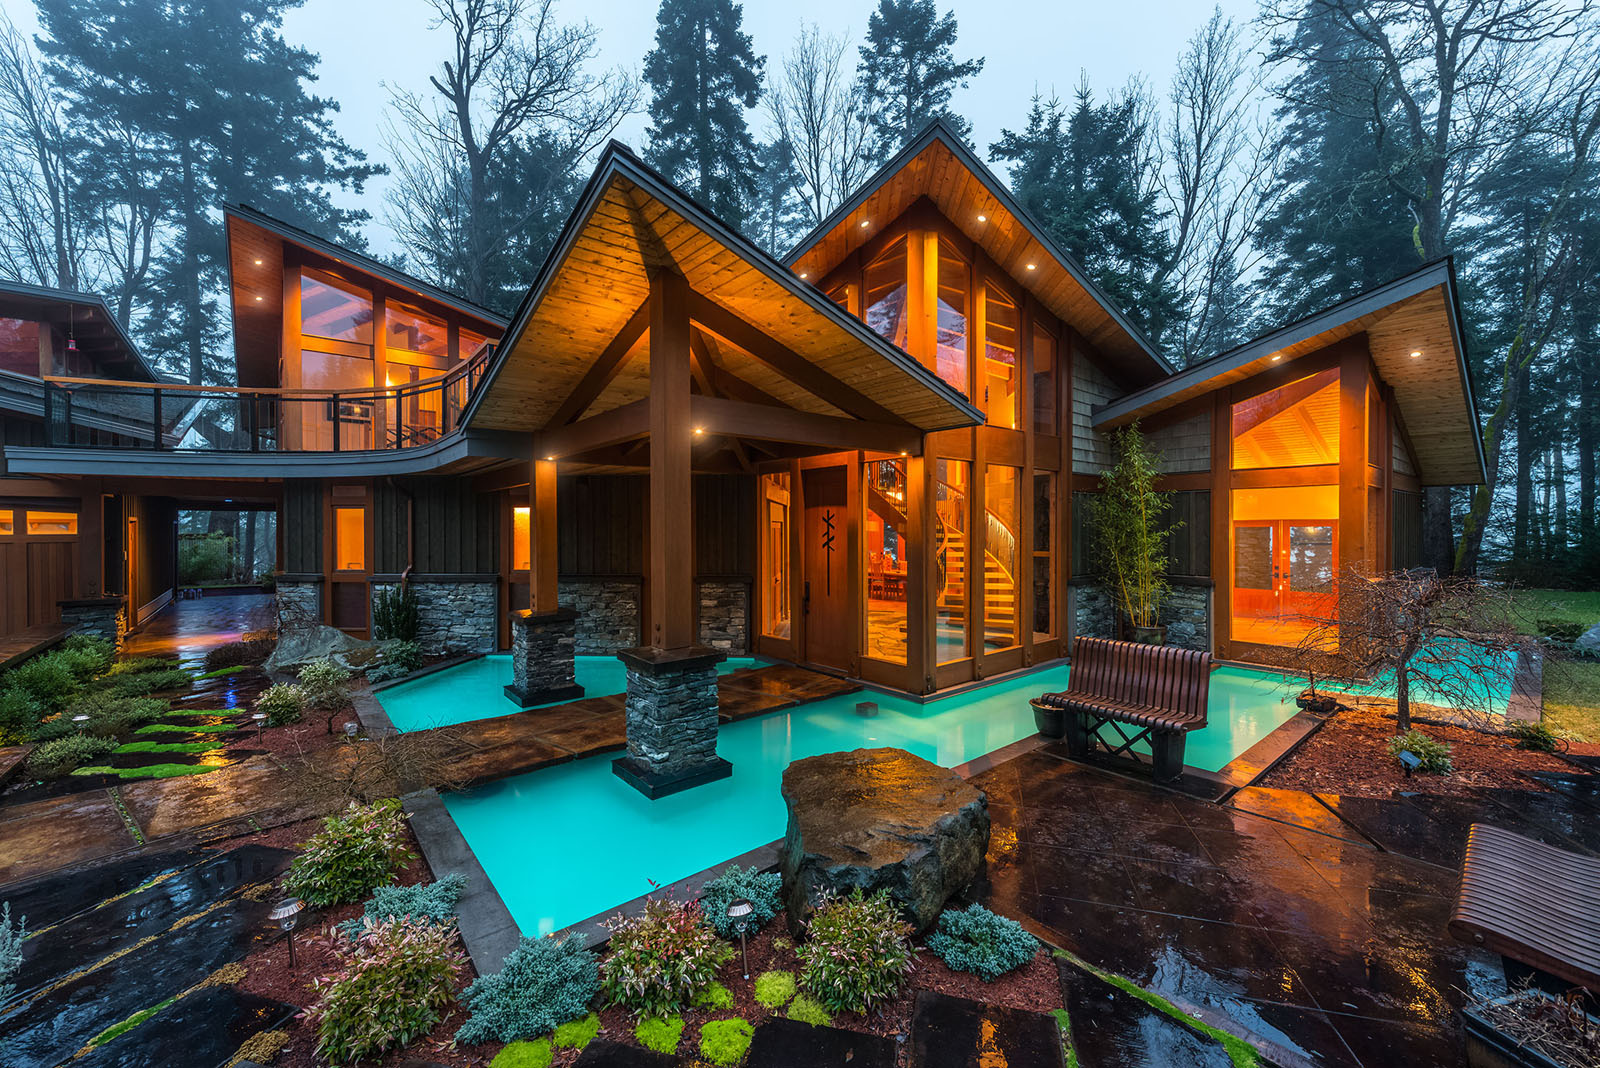 Luxury West Coast Contemporary Timber Frame Oceanfront Estate Idesignarch Interior Design